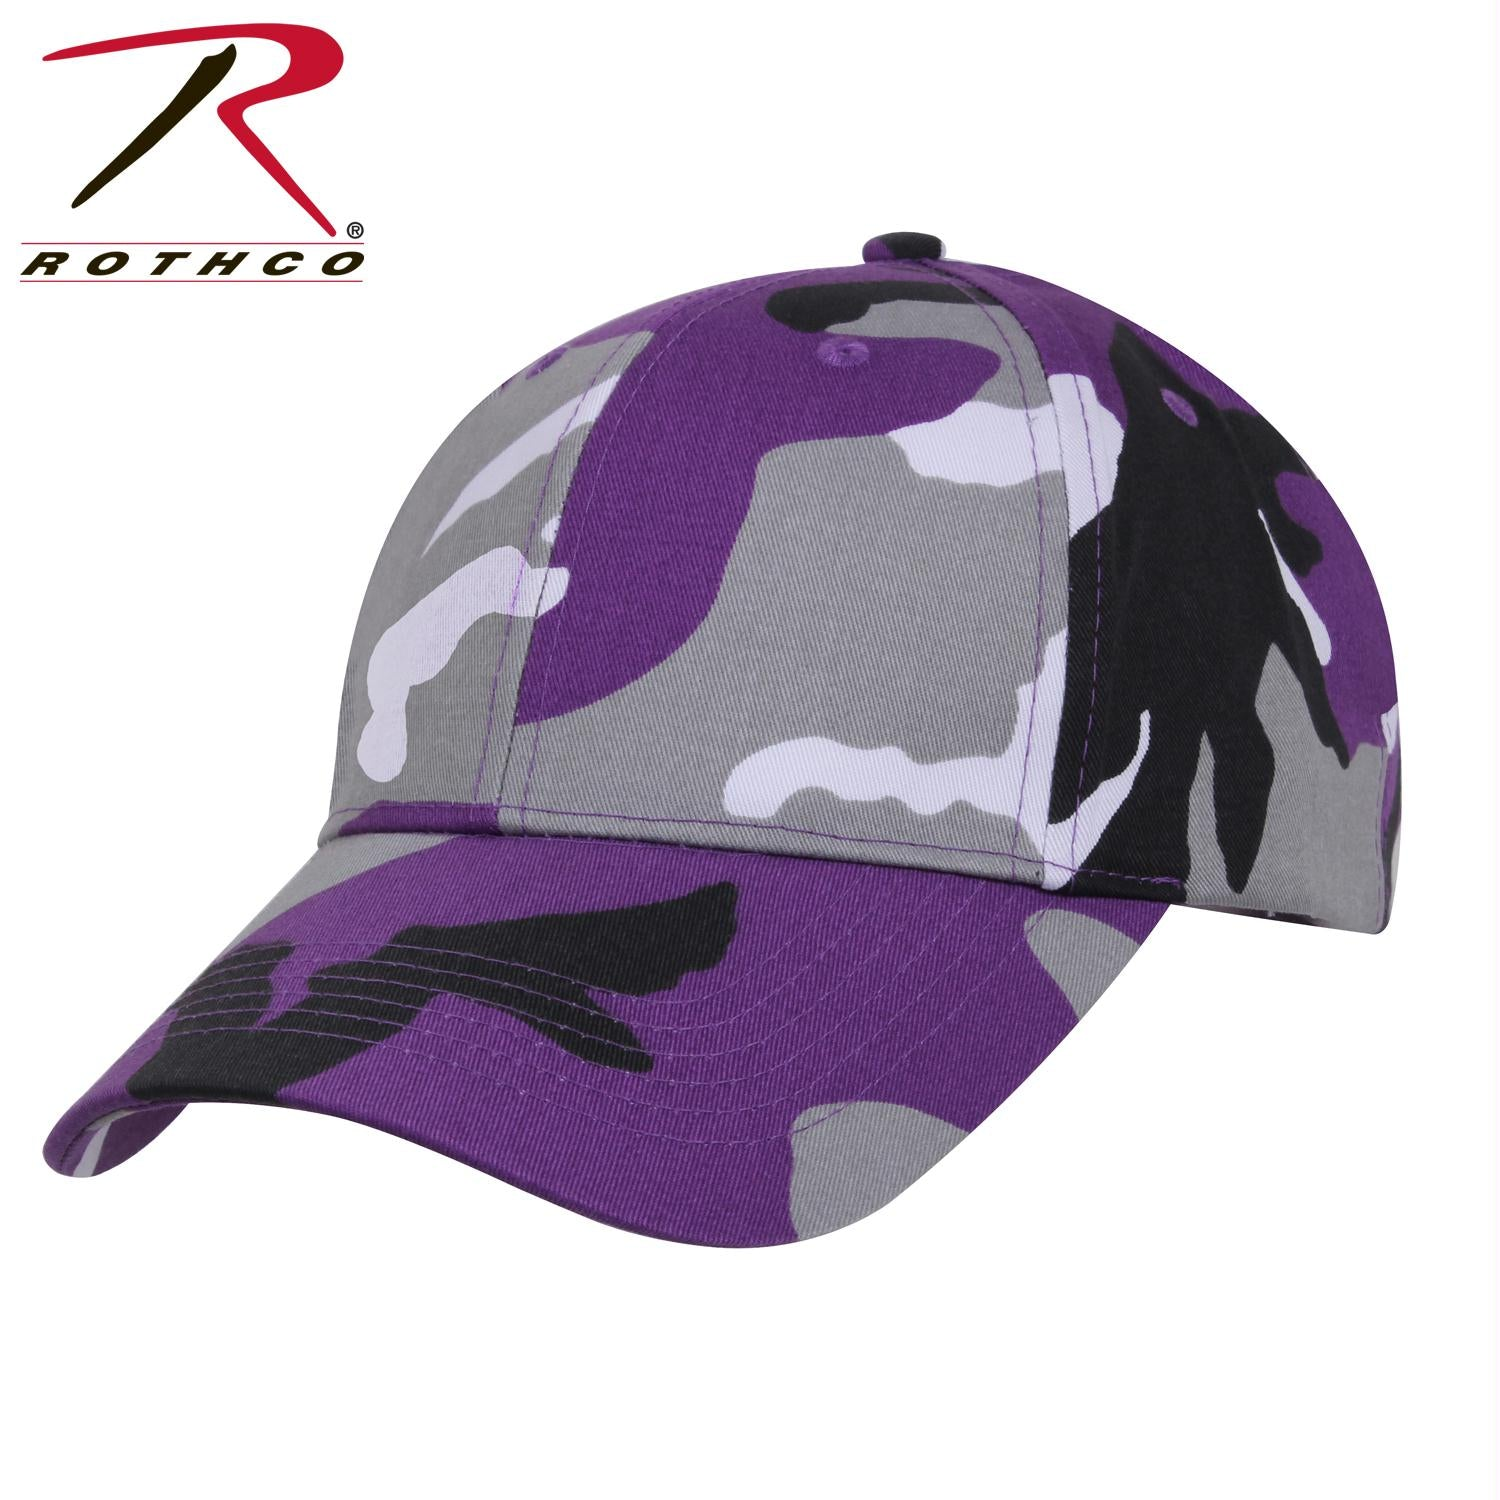 Rothco Supreme Camo Low Profile Cap - Ultra Violet Camo / One Size